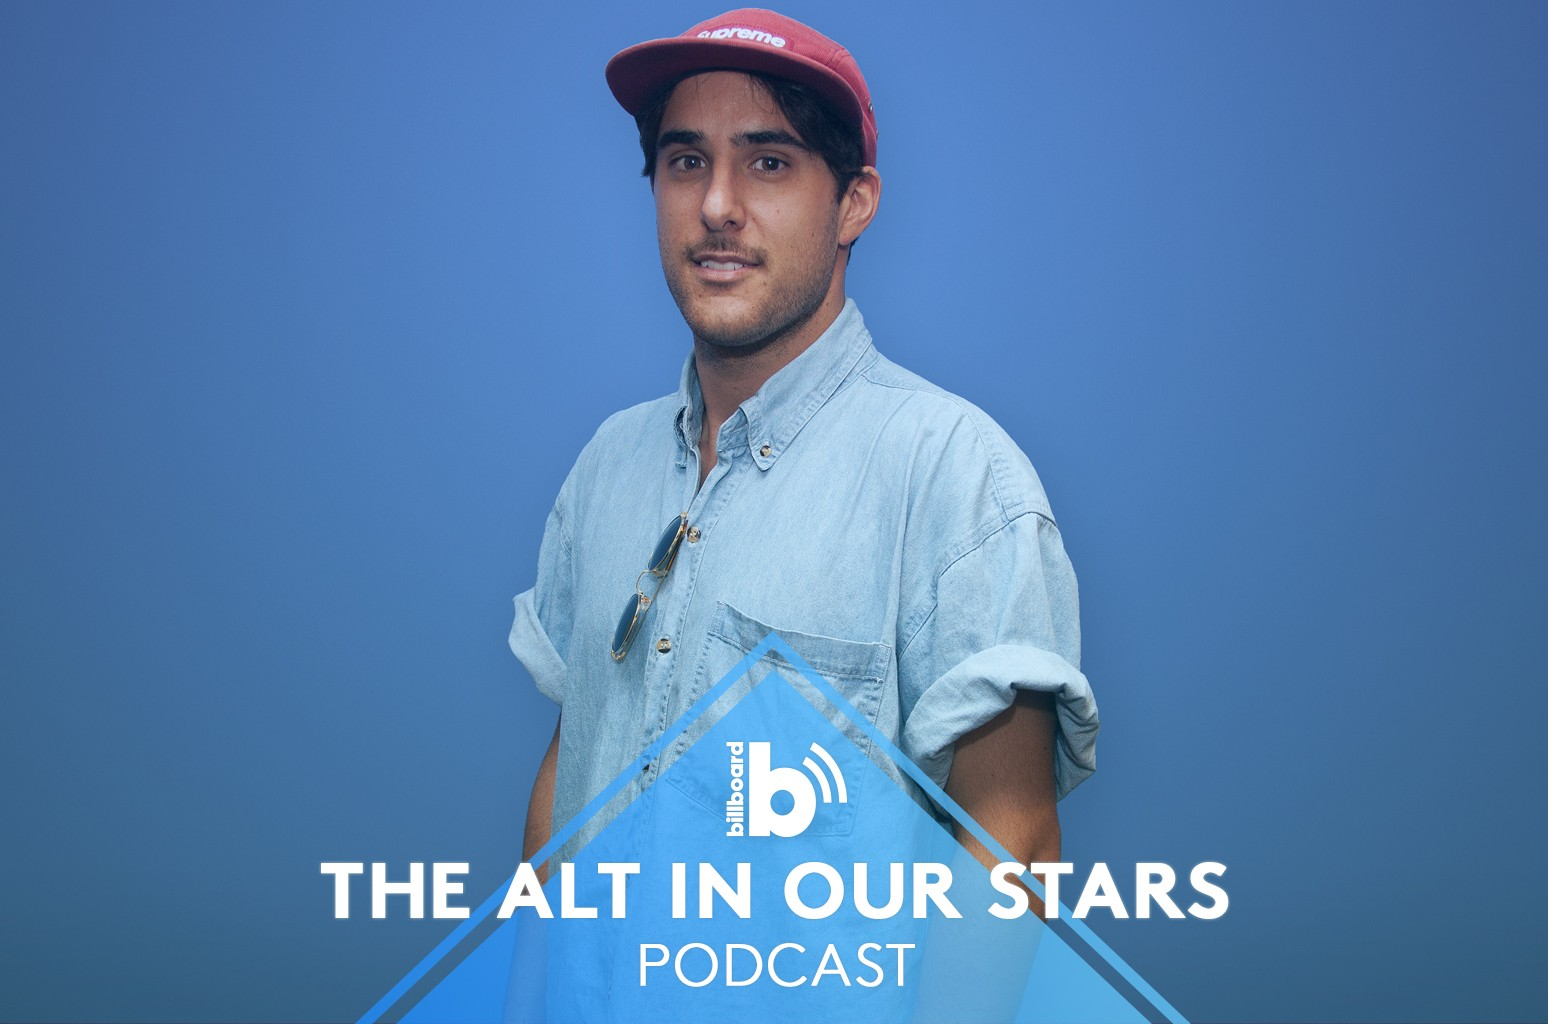 The Alt in Our Stars Podcast featuring: Zac Farro